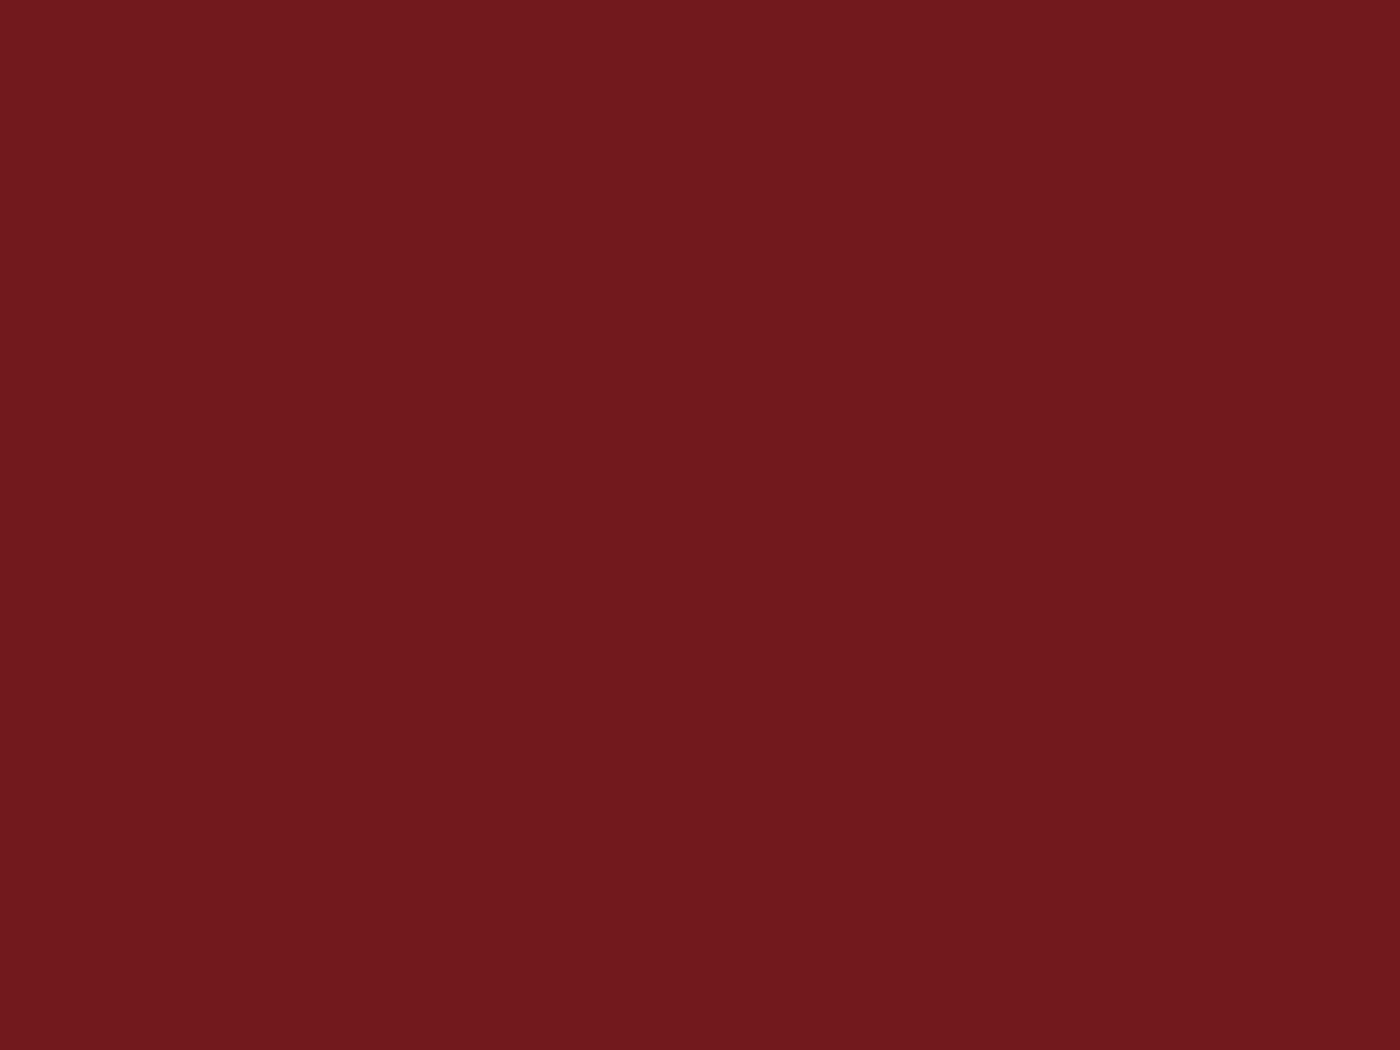 1400x1050 Prune Solid Color Background